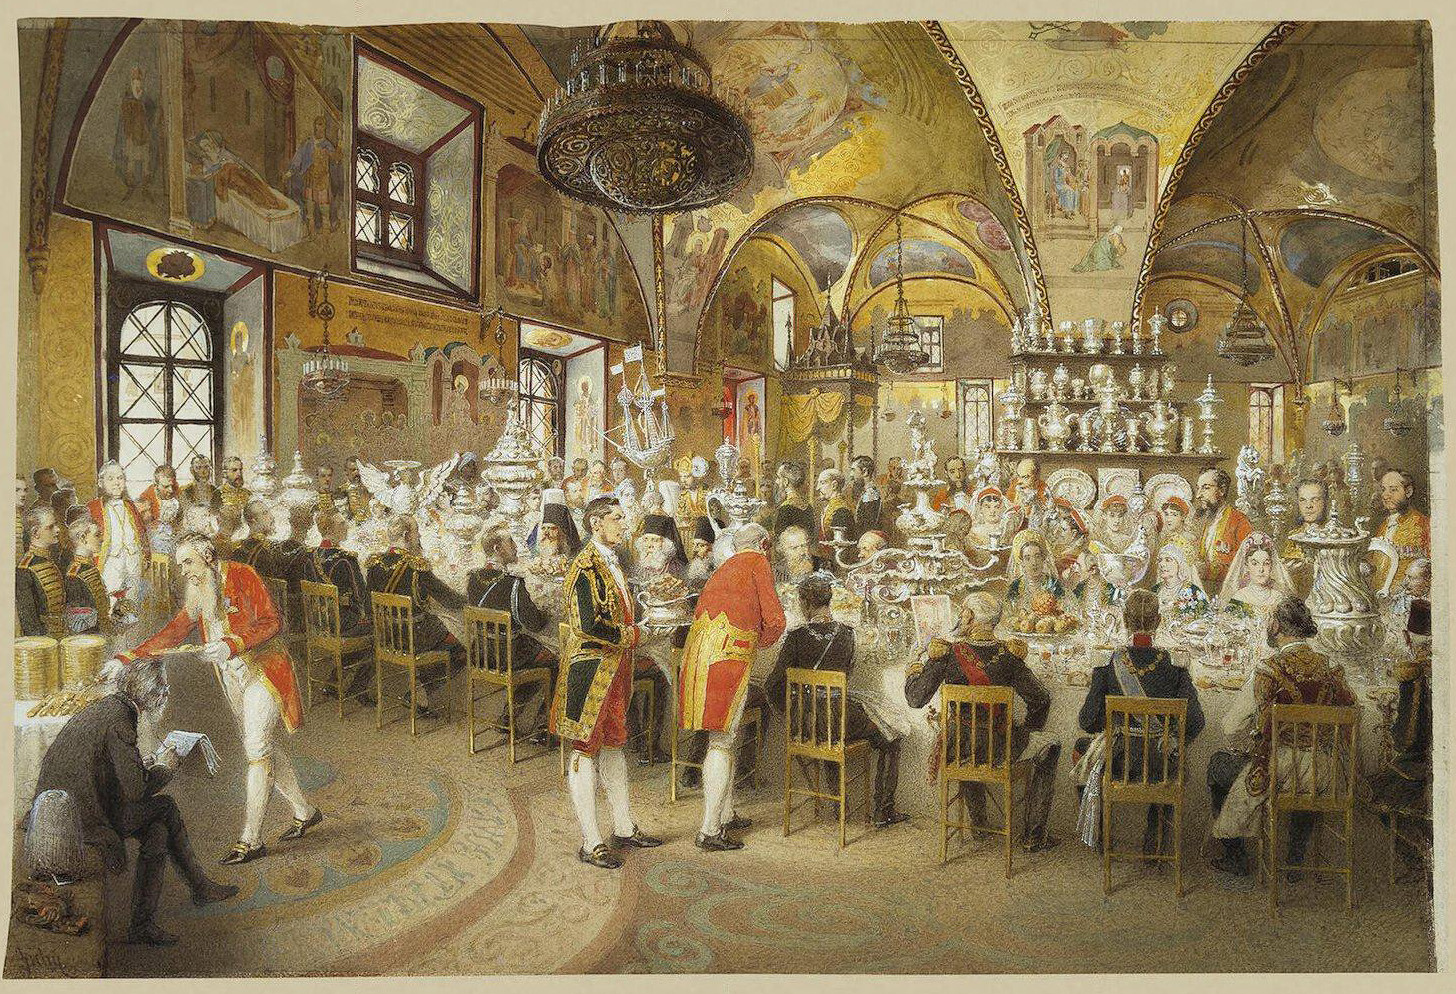 Mihály Zichy. The gala dinner in the Concert hall of the Winter Palace, 1873.